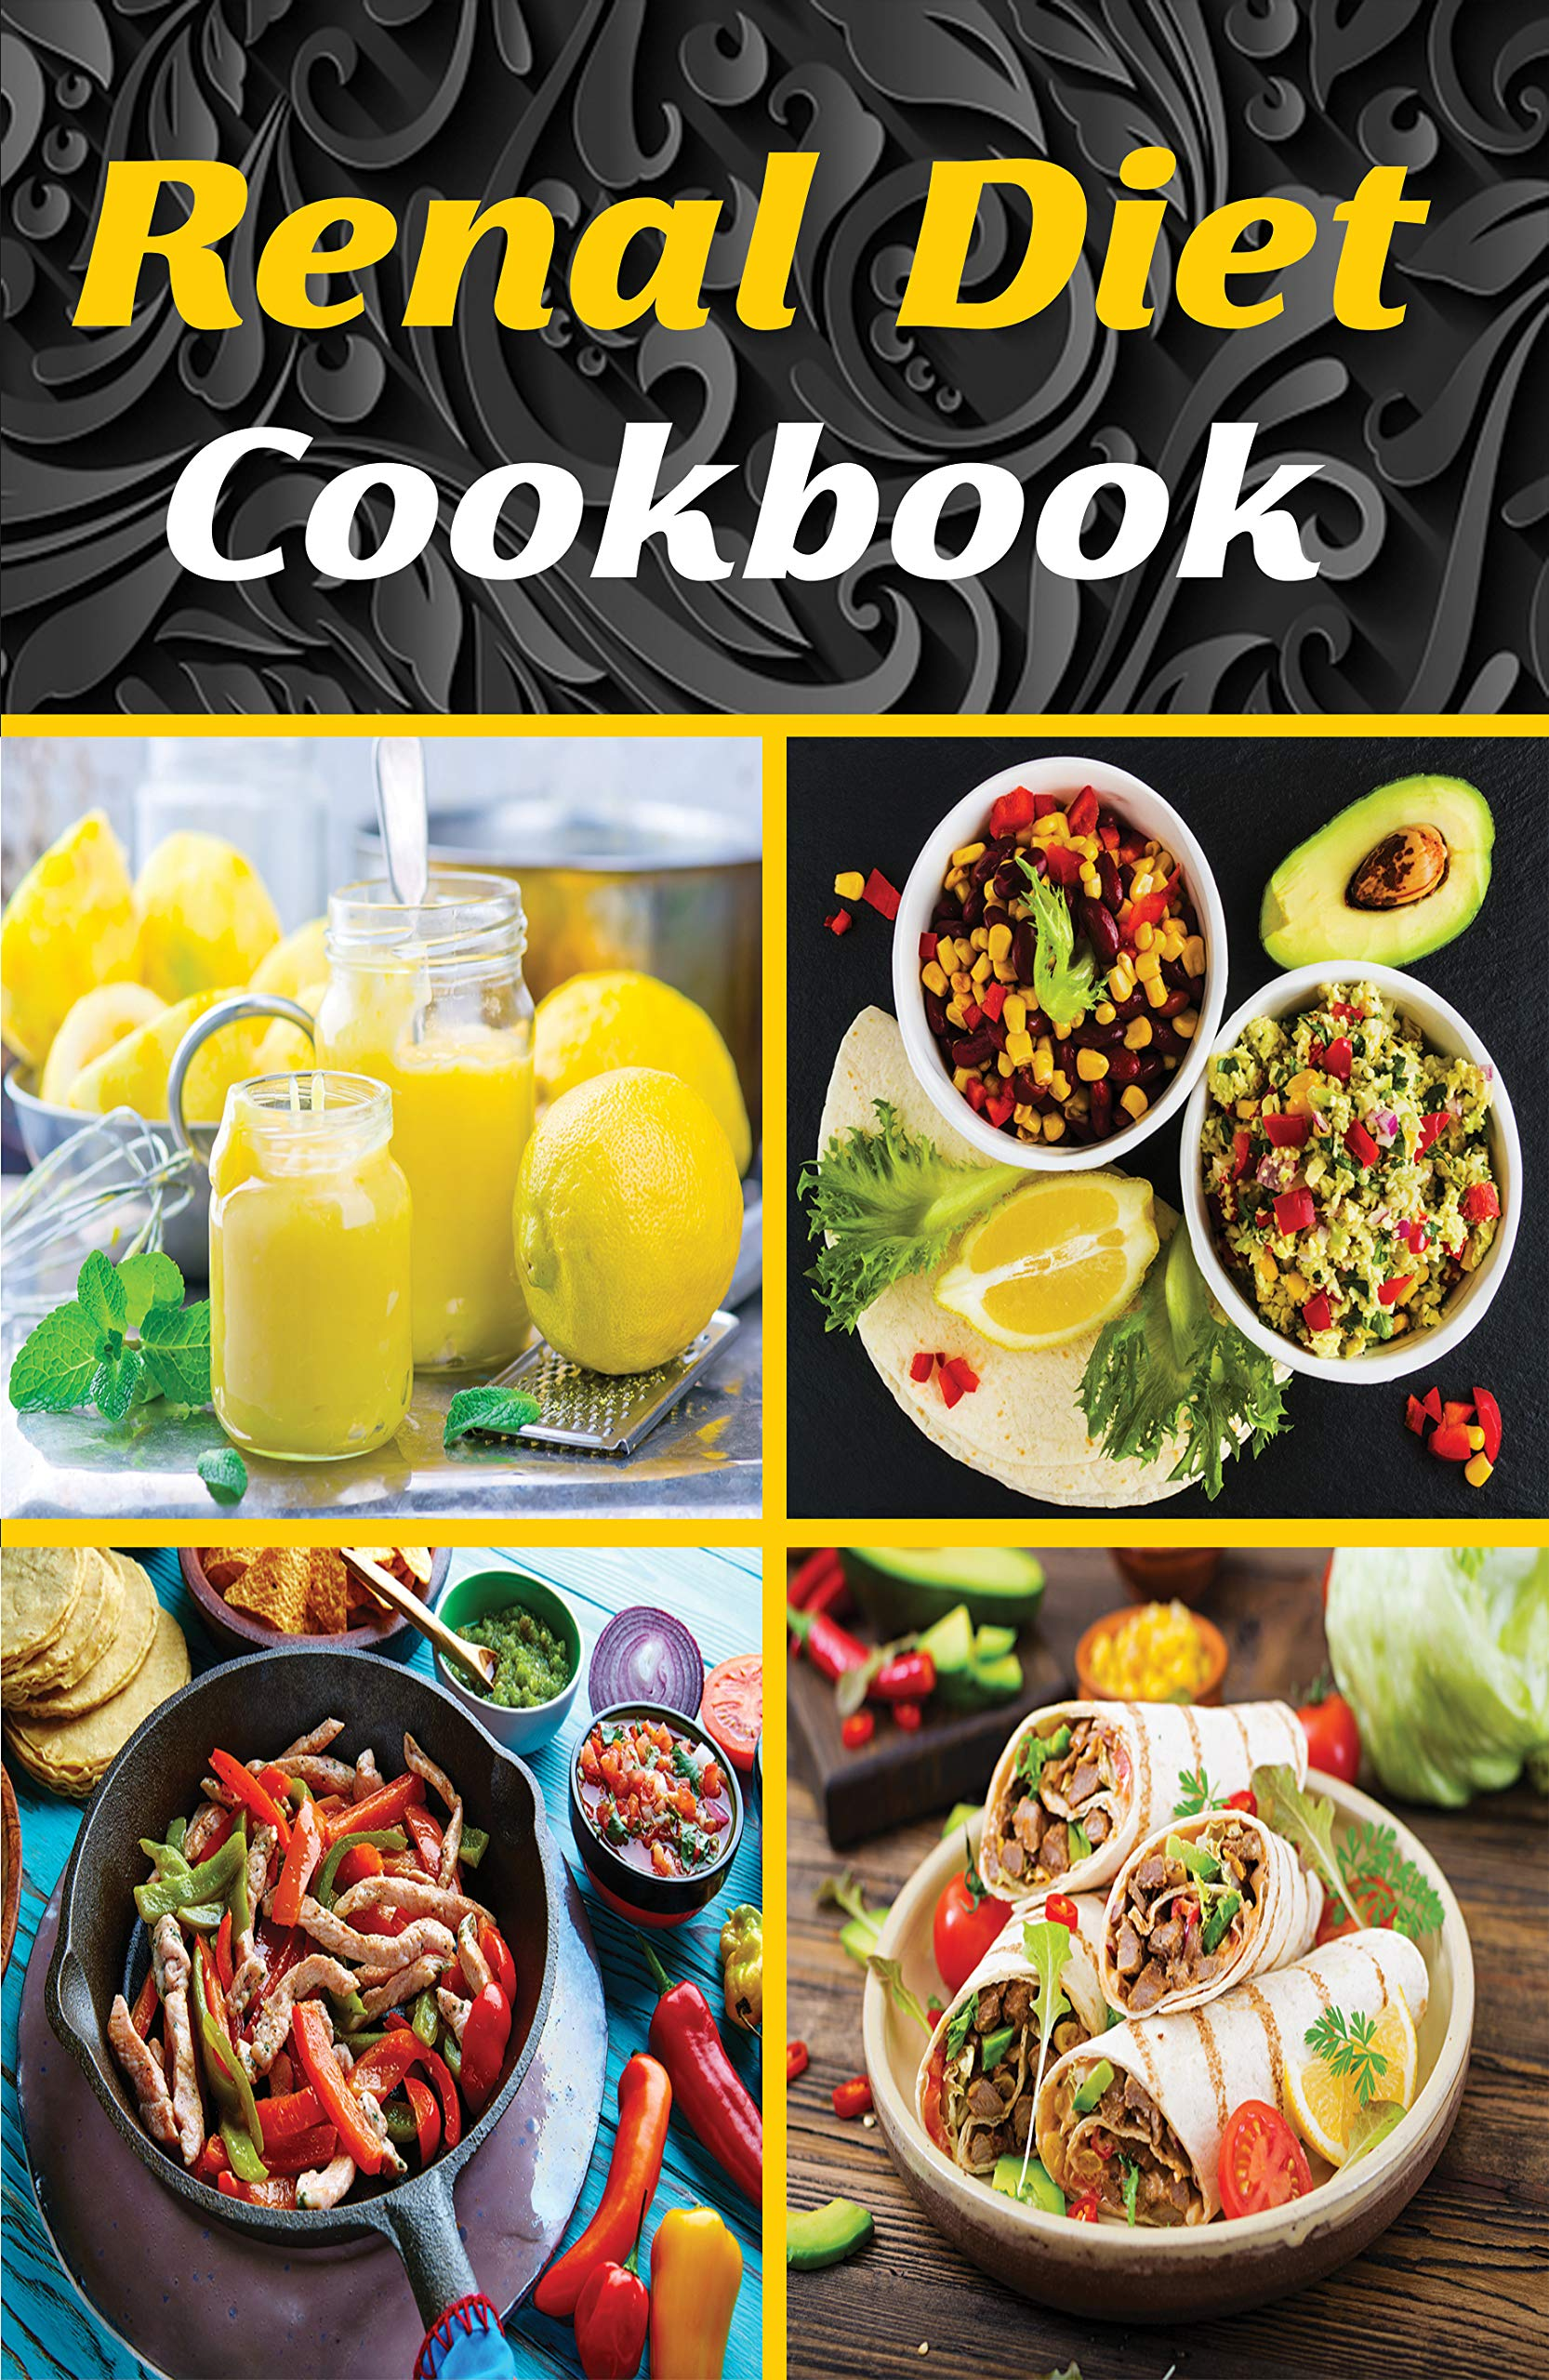 Renal Diet Cookbook: Delicious Recipes With Low Quantities of Sodium, Phosphorus, and Potassium for a Practical and Without Too Much Discomfort (Healthy Foods and Renal Diet).